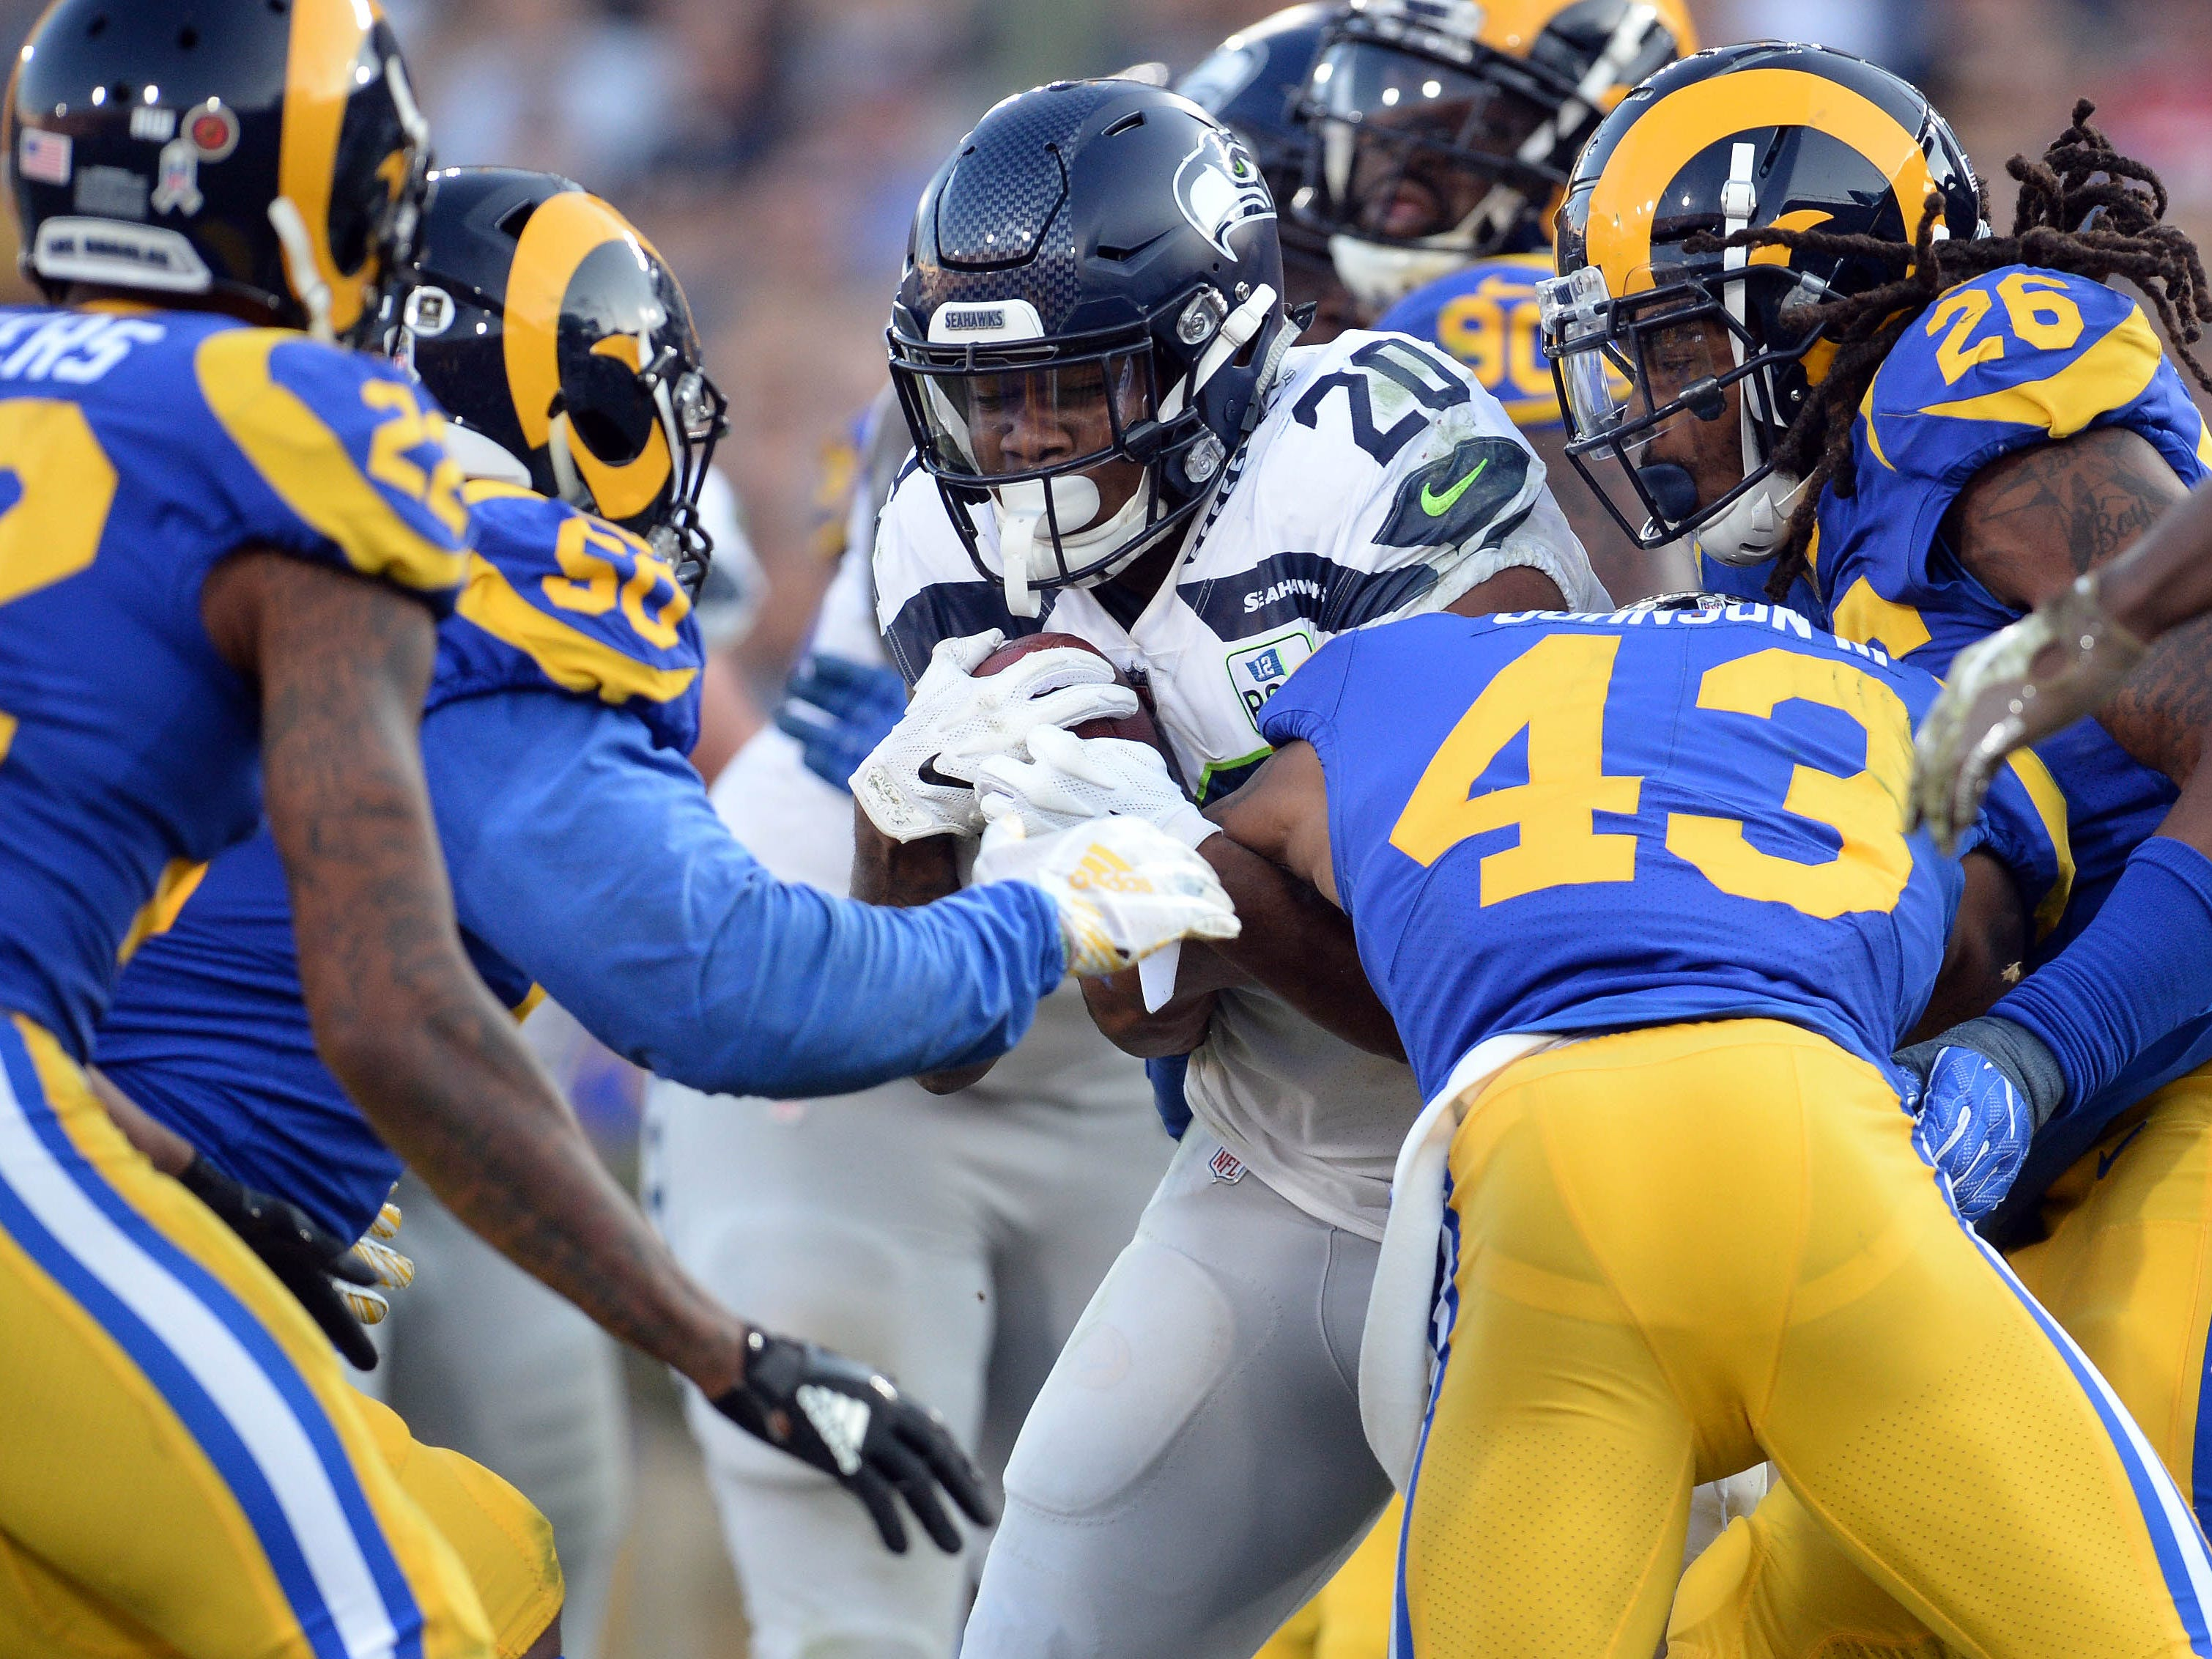 Seattle Seahawks running back Rashaad Penny runs the ball against the Los Angeles Rams during the second half at the Los Angeles Memorial Coliseum.